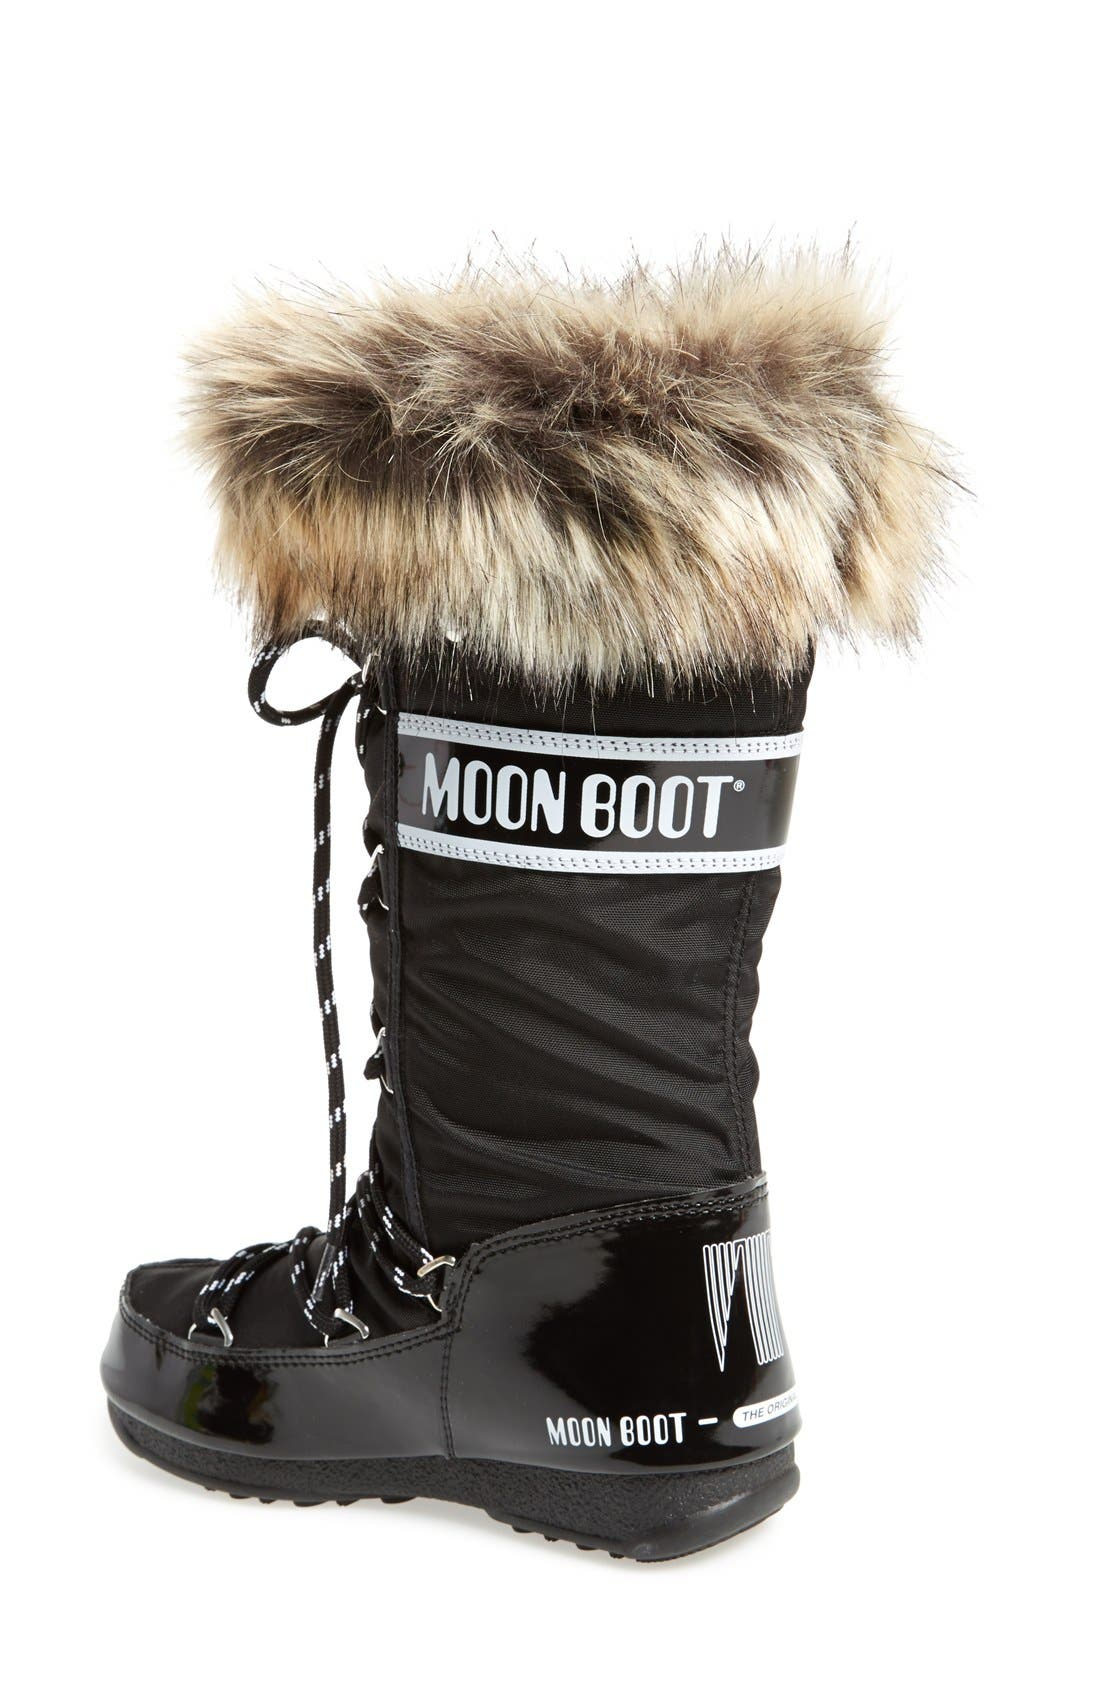 'Monaco' Waterproof Insulated Moon Boot<sup>®</sup>,                             Alternate thumbnail 2, color,                             001